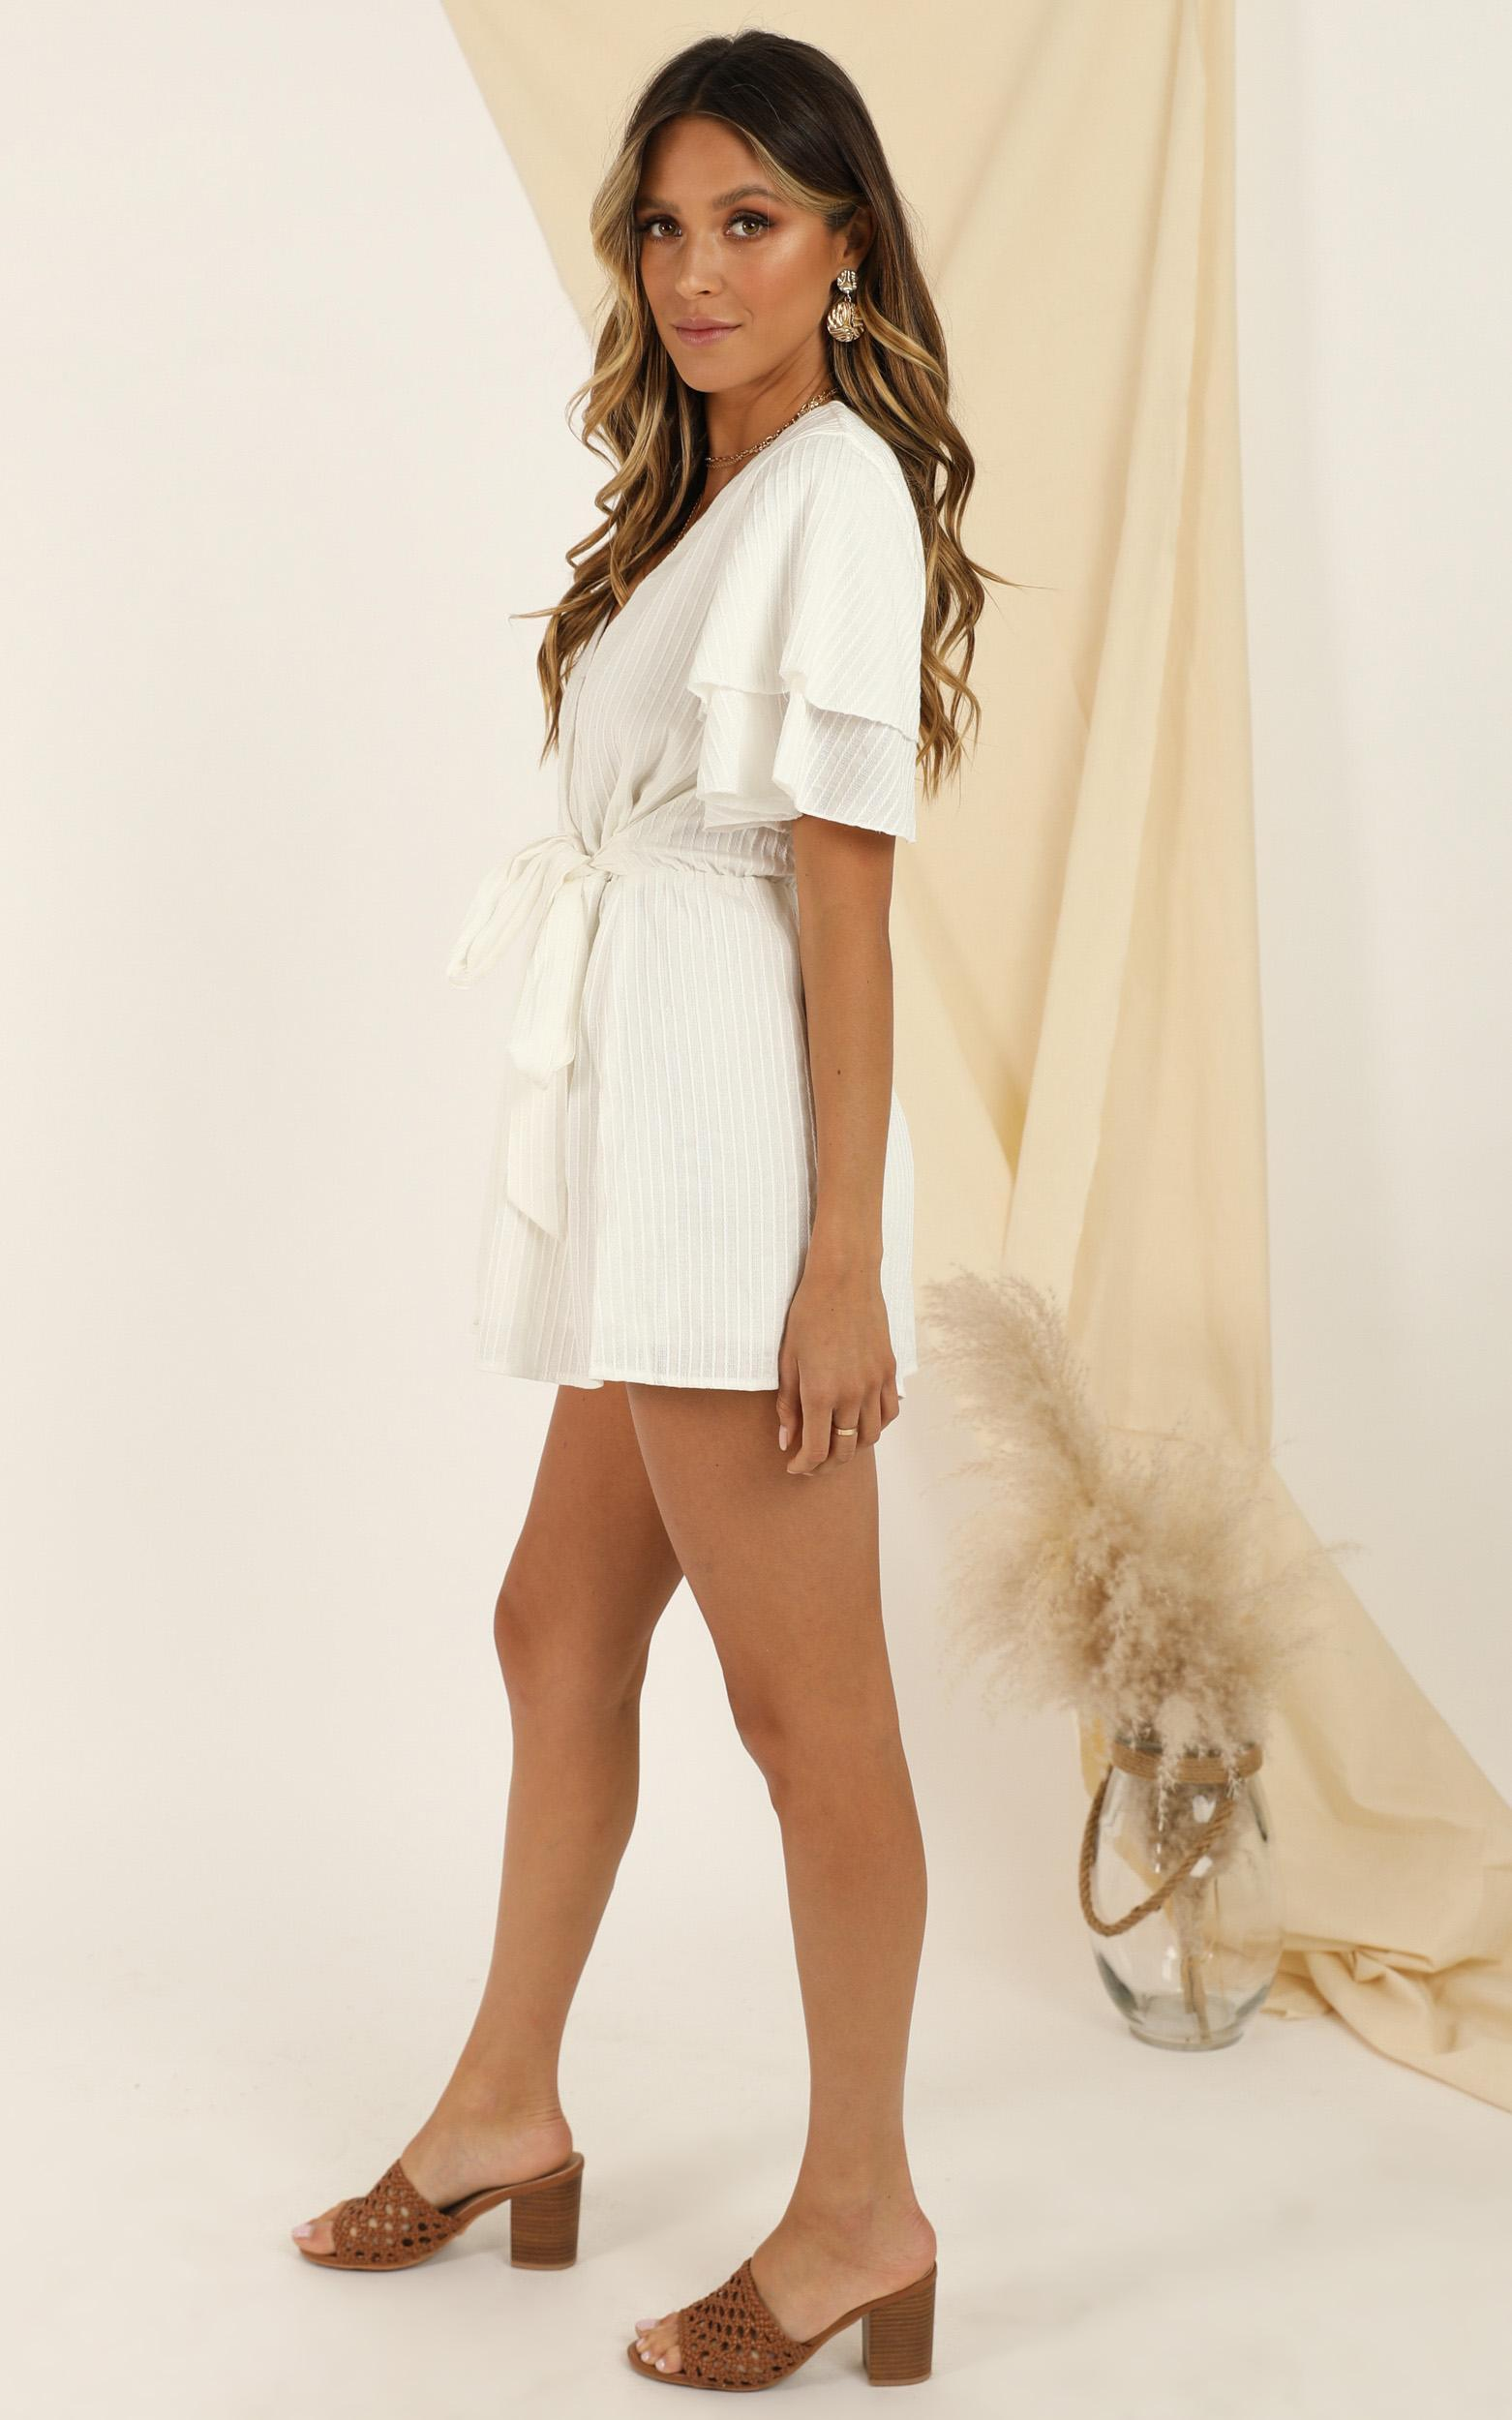 Run Away Girl Playsuit in white - 20 (XXXXL), White, hi-res image number null